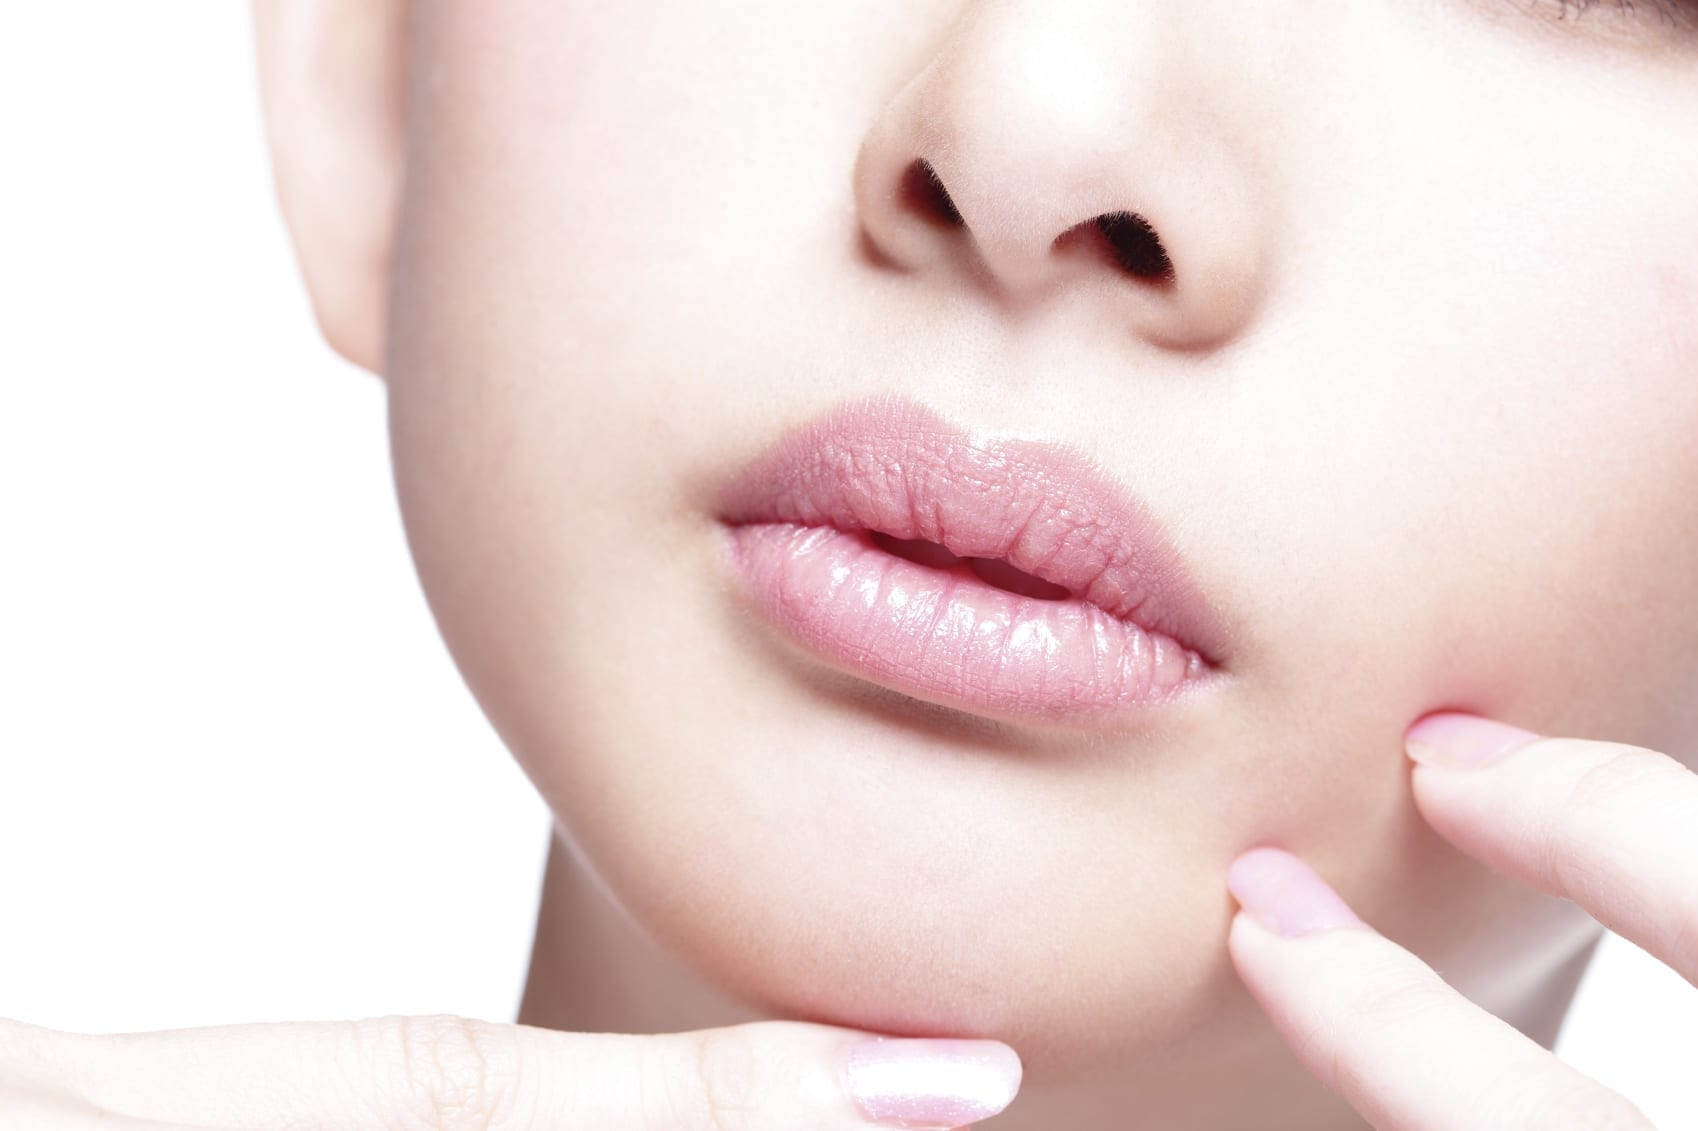 woman with plump lips and glowing skin